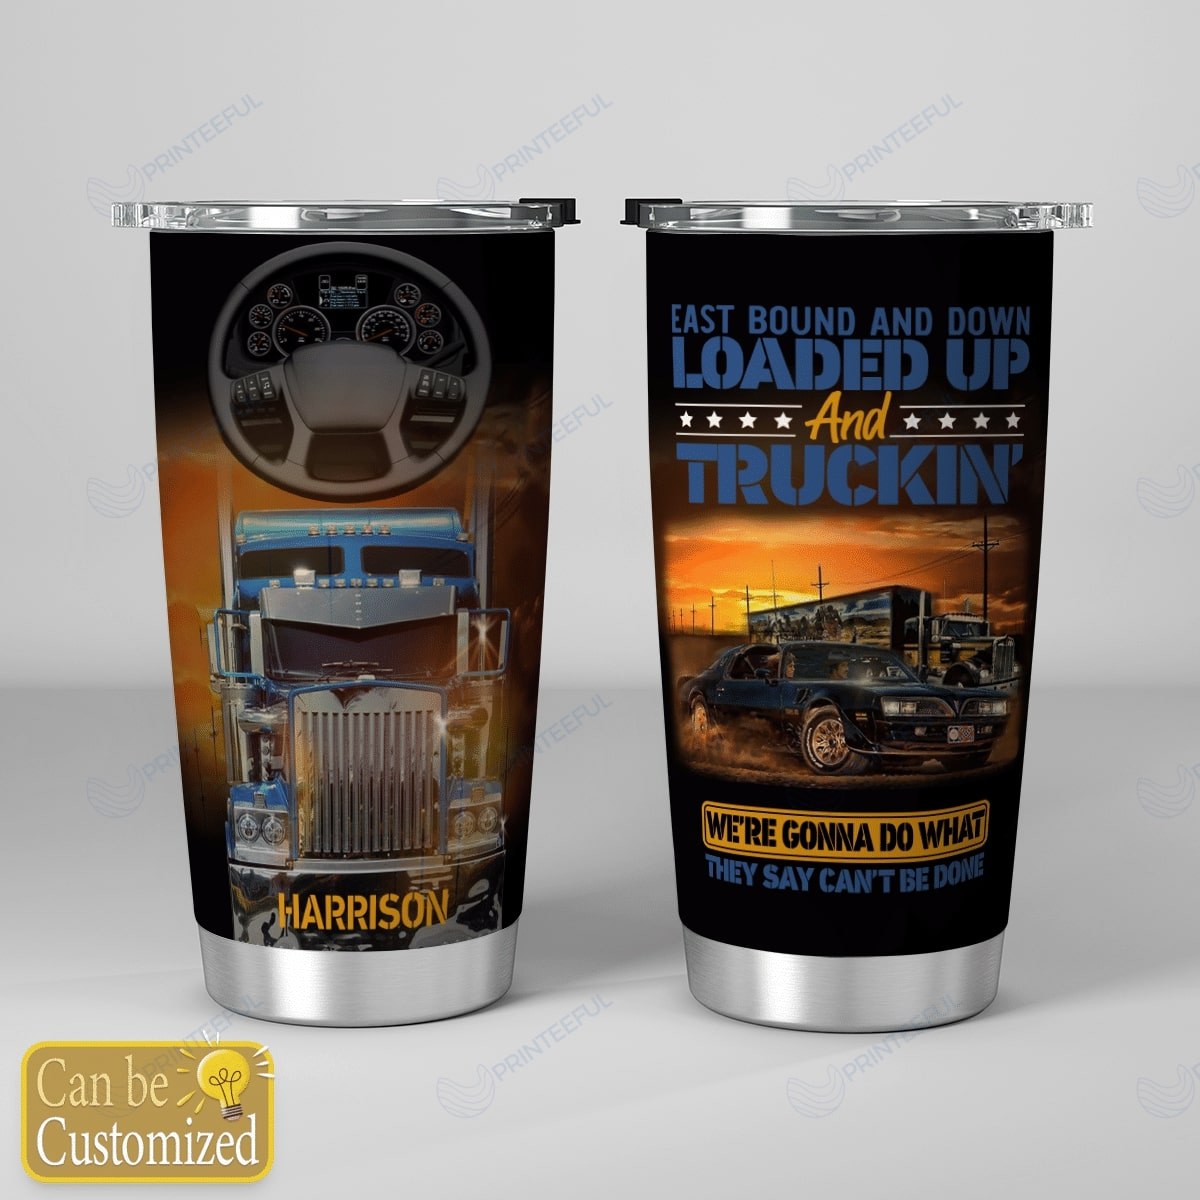 custom name east bound and down loaded up and truckin all over print tumbler 5